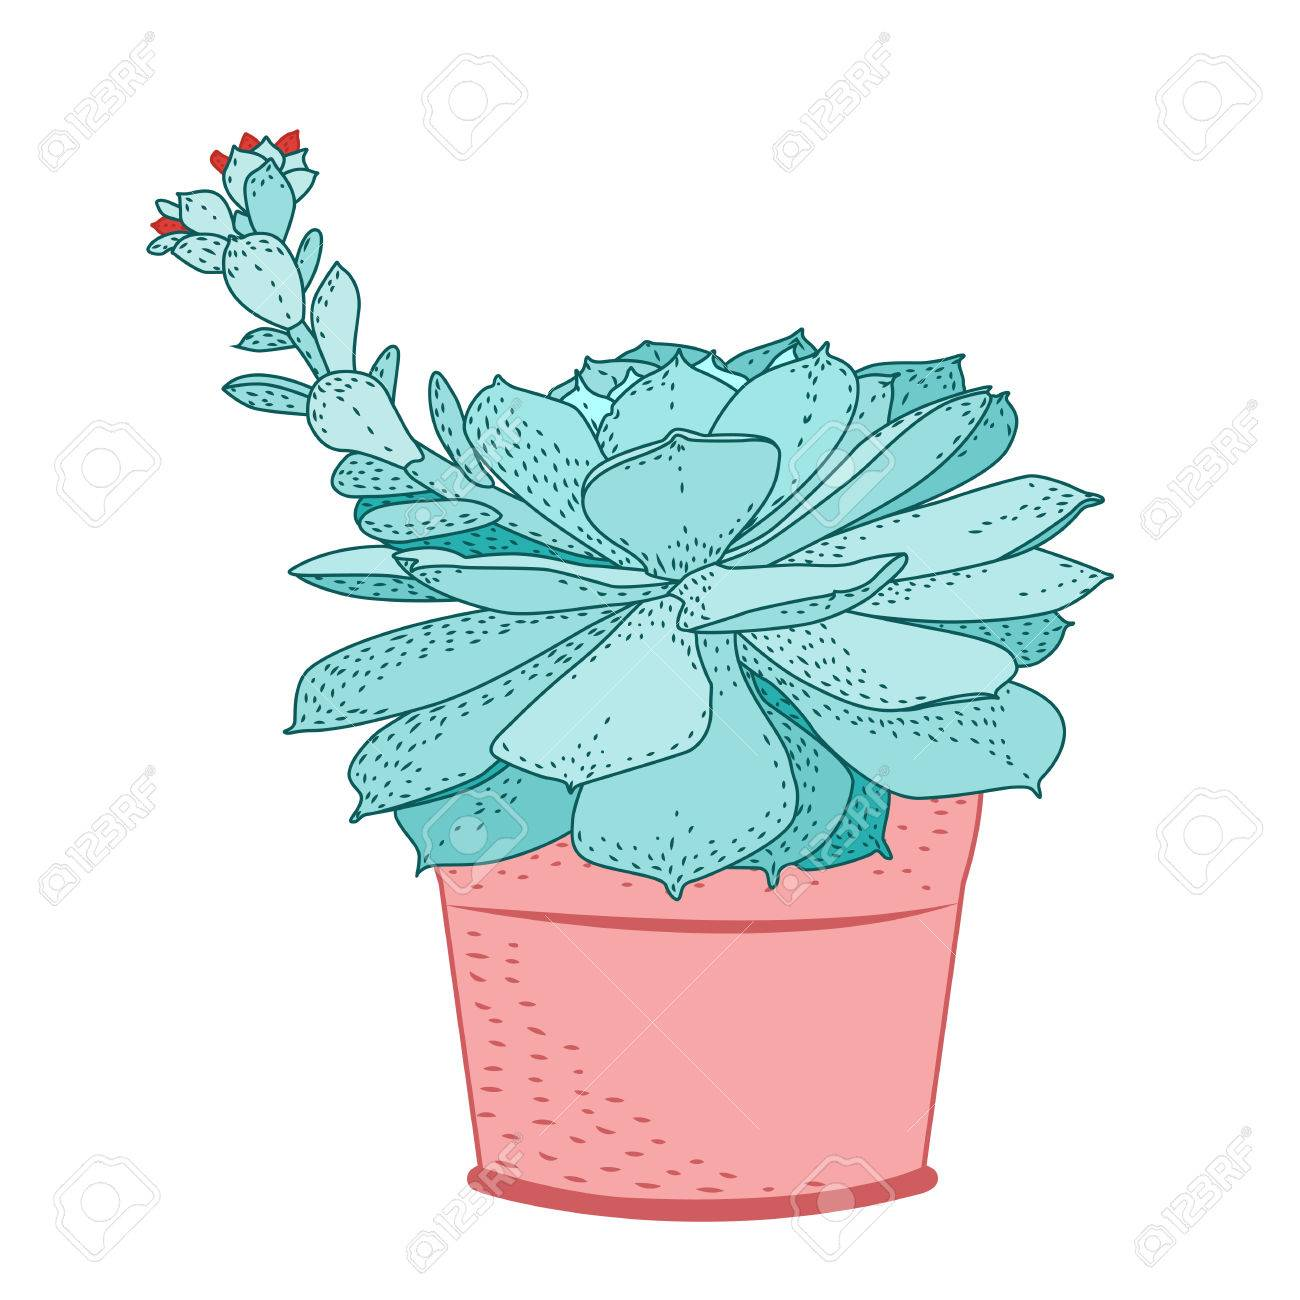 Succulent Plant In Rustic Pot Green Blue Turquoise Fleshy Thick Leaves Stem With Small